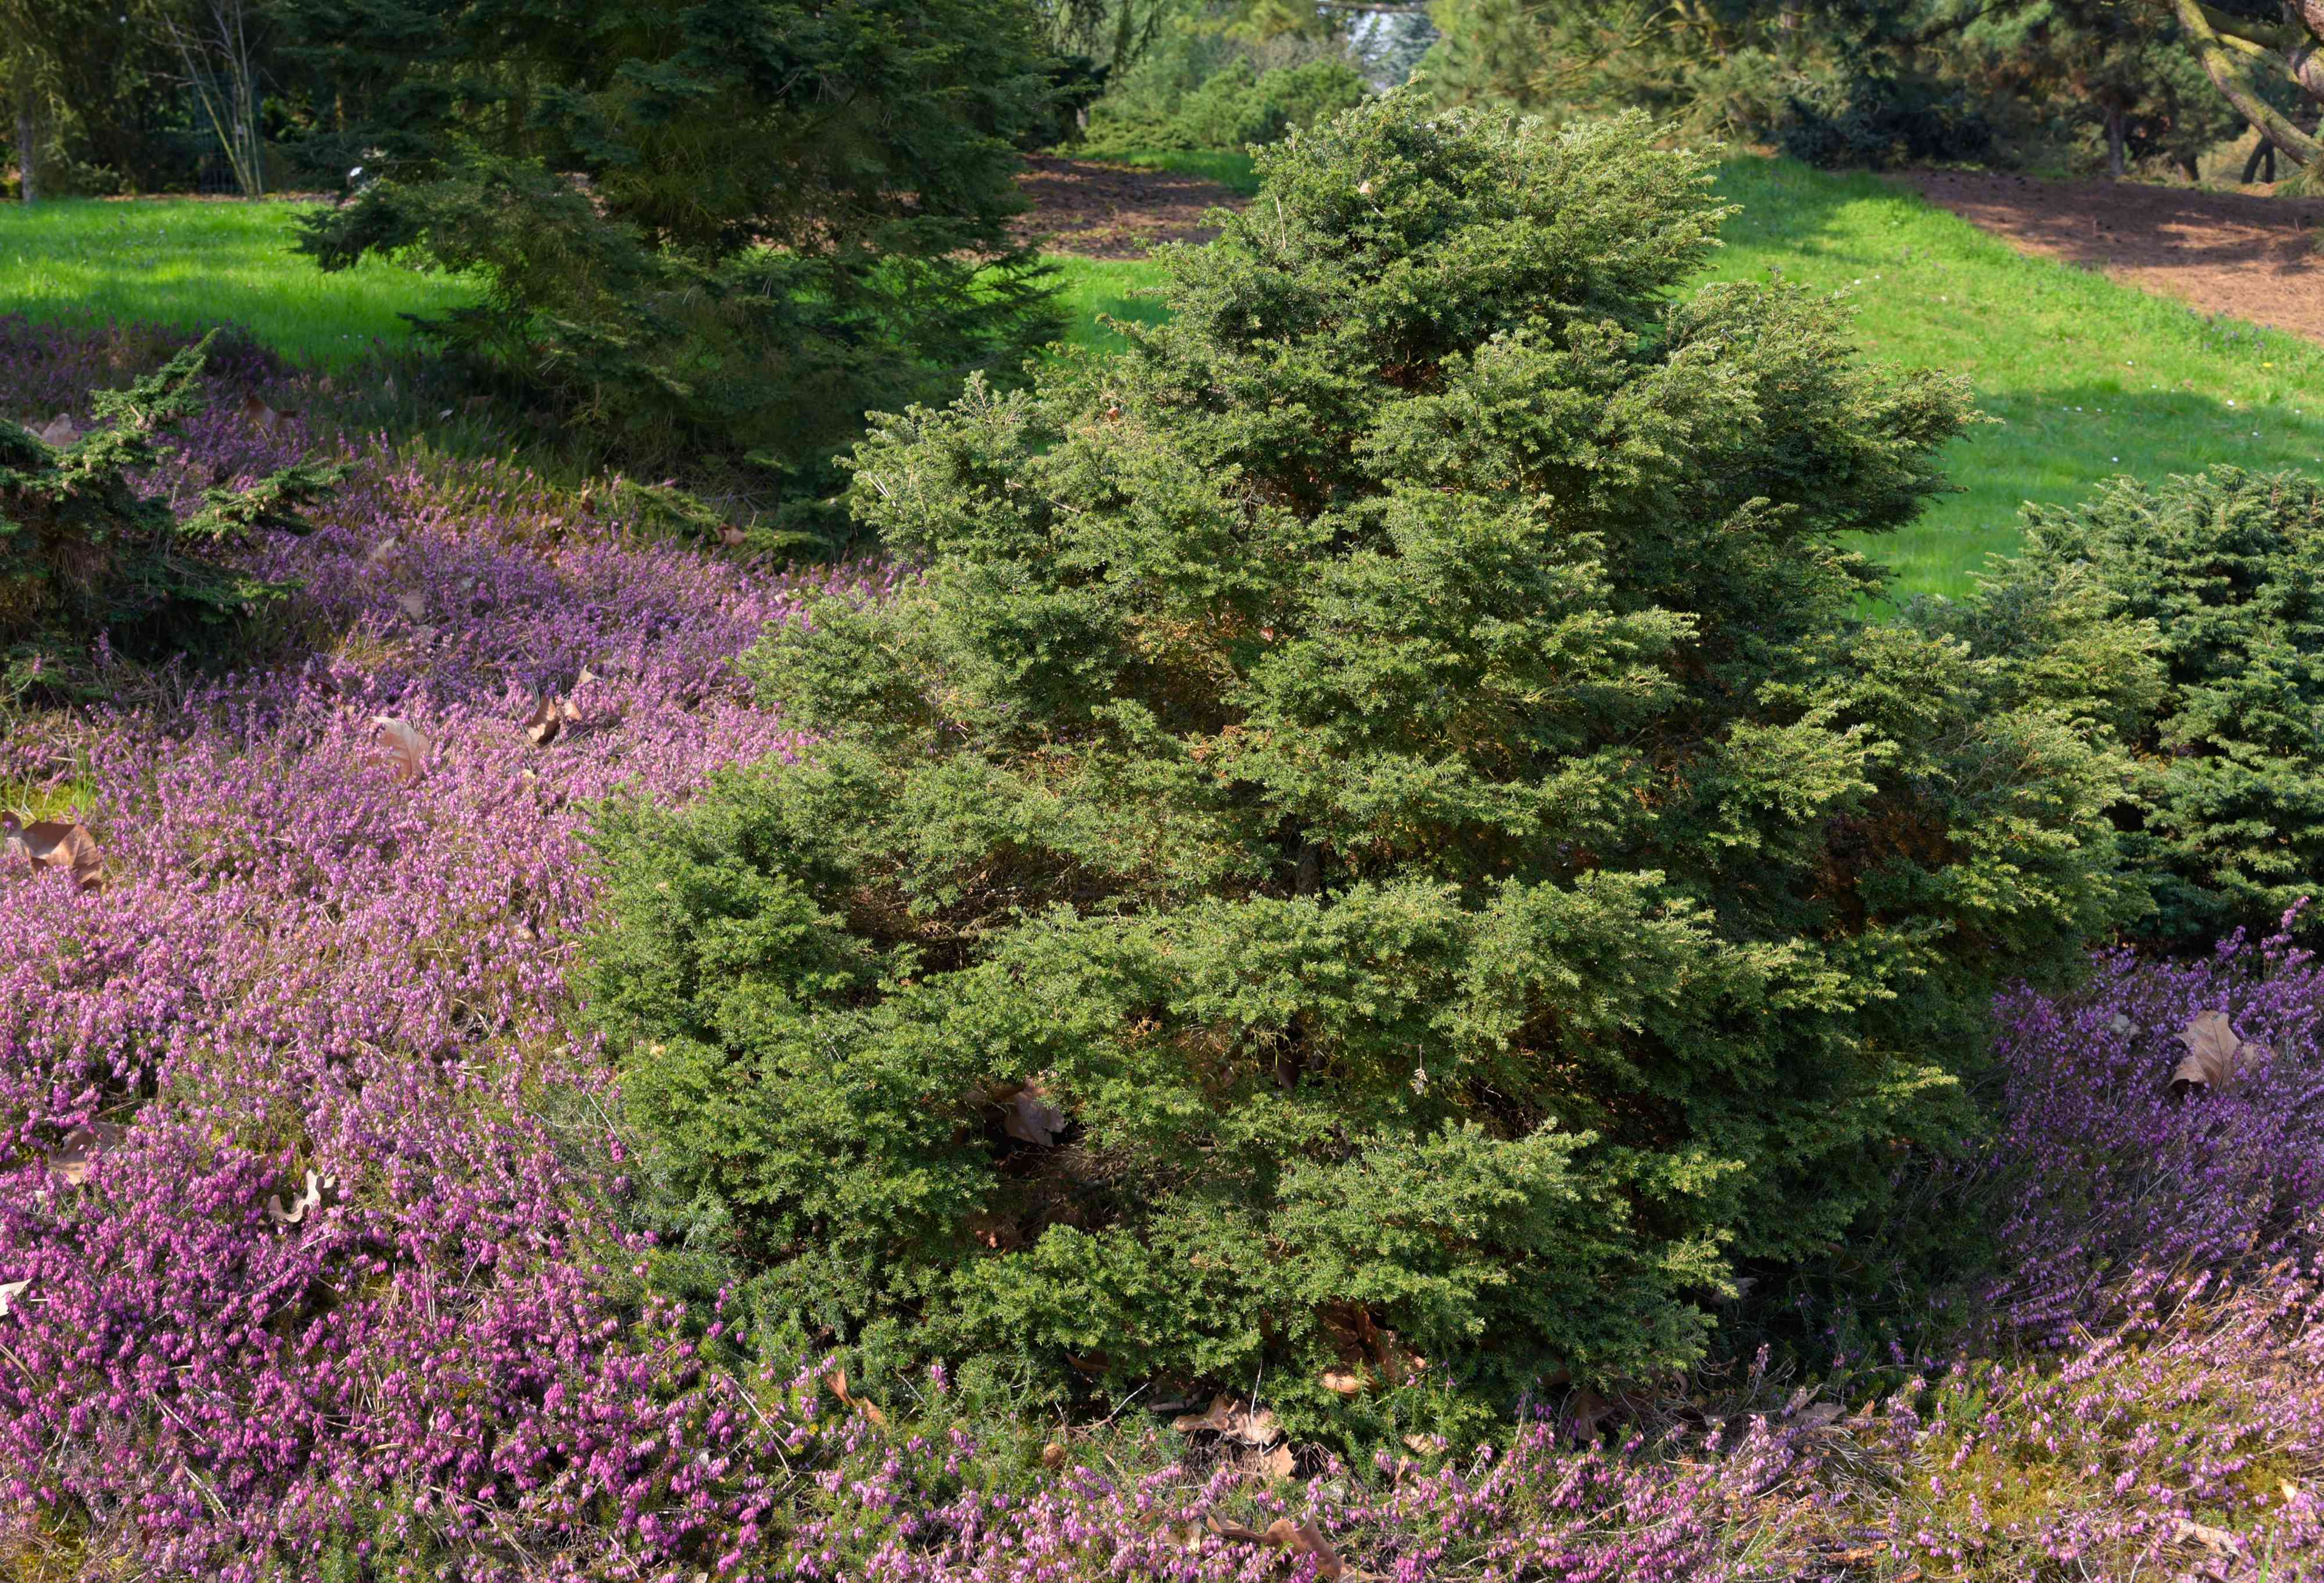 Canadian hemlock dwarf tree surrounded by purple ground cover in sunlight